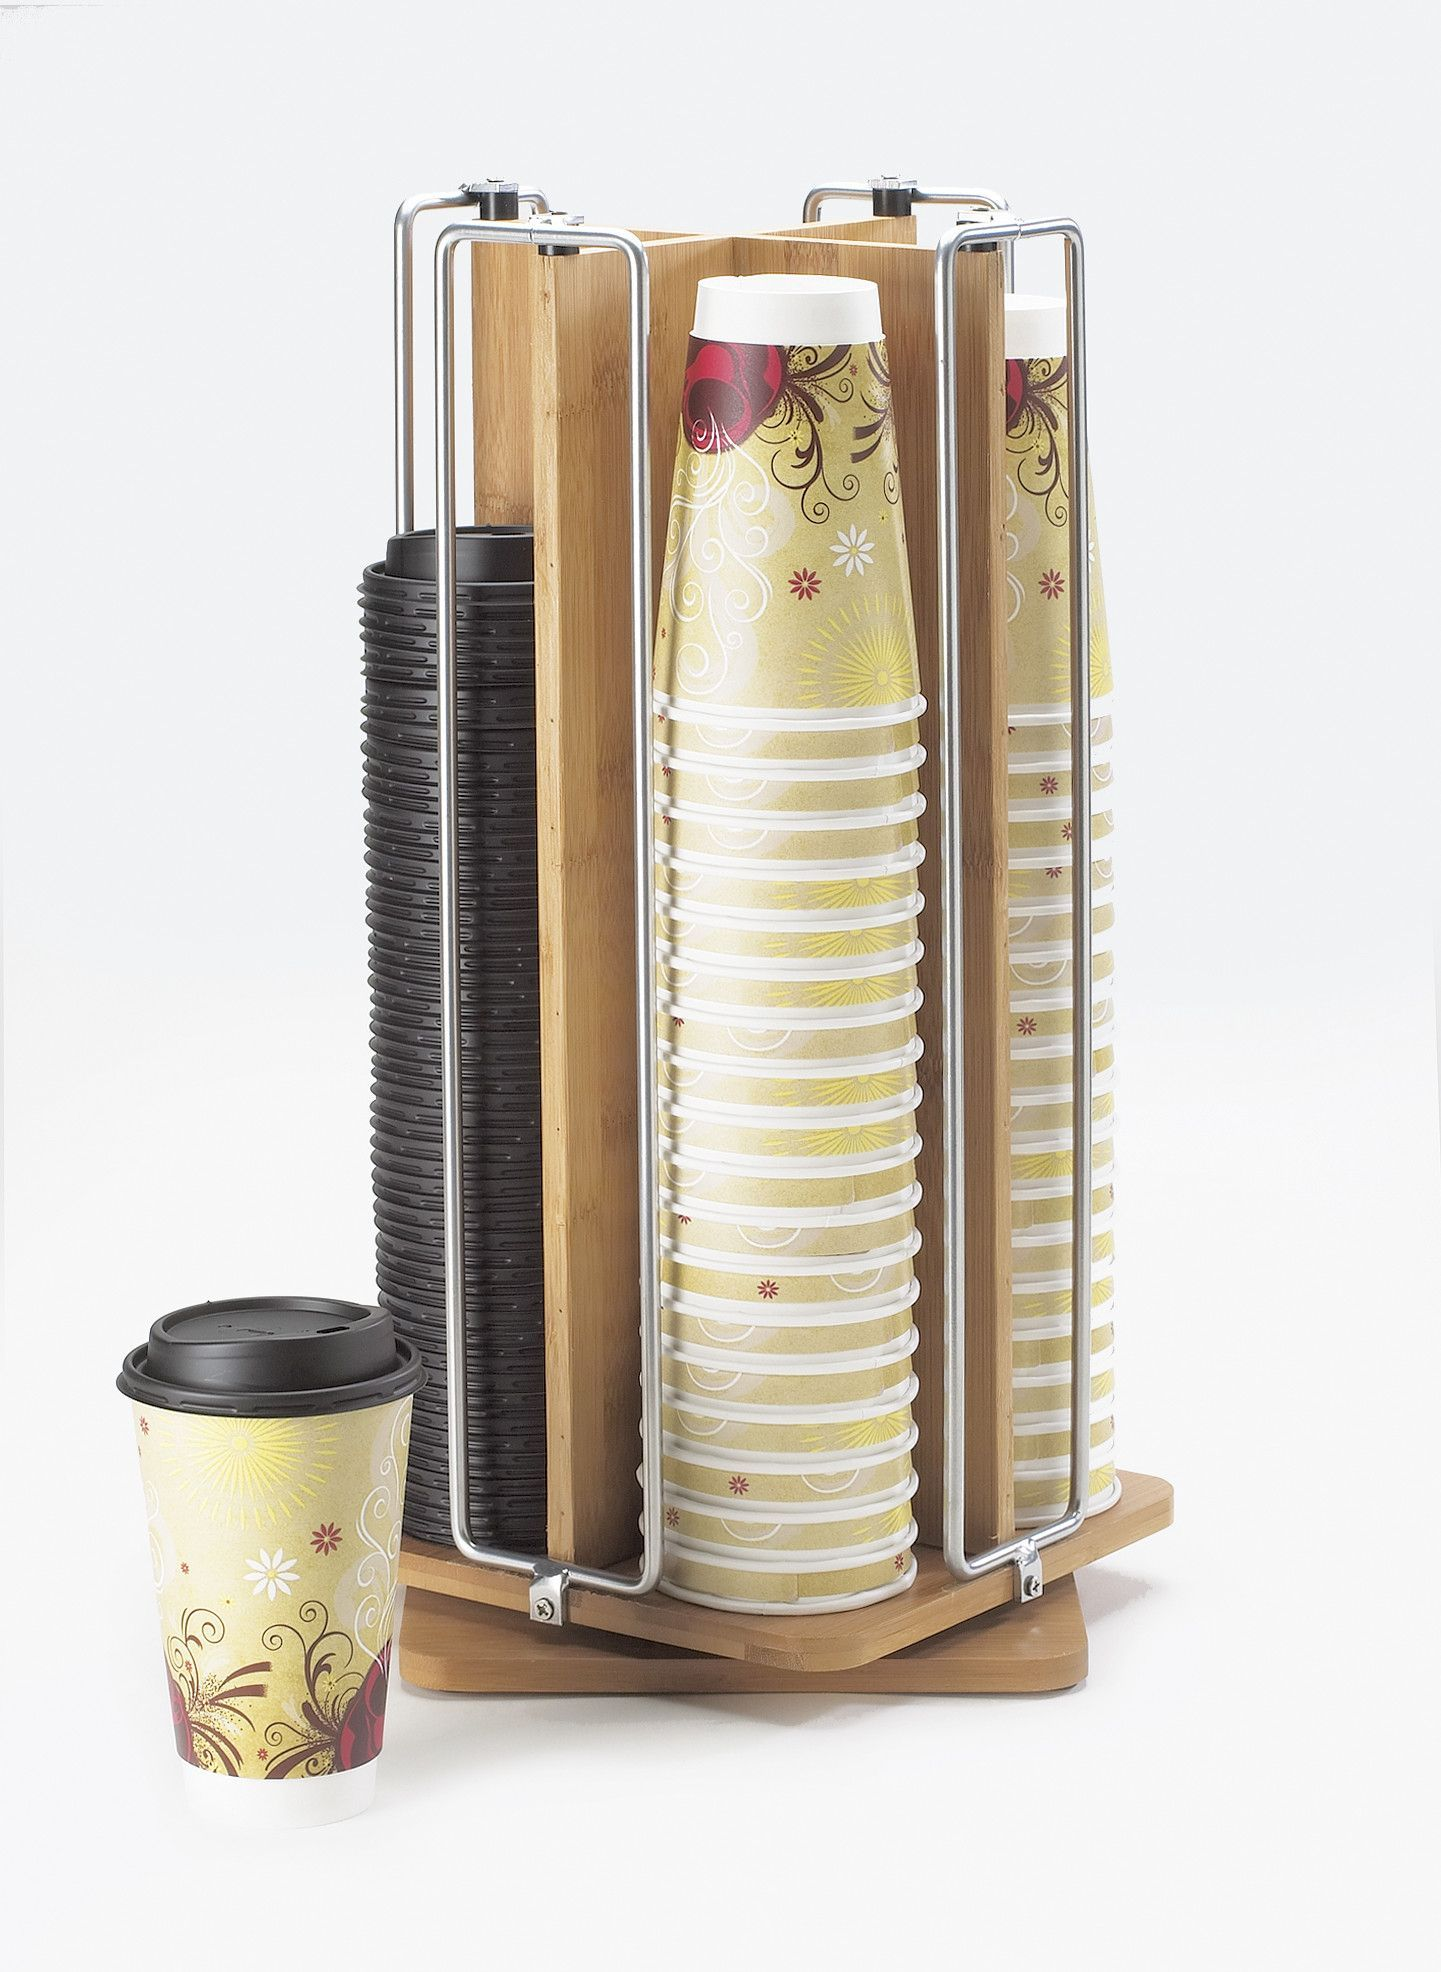 Features Ecofriendly. Fits cups and lids up to 3.63